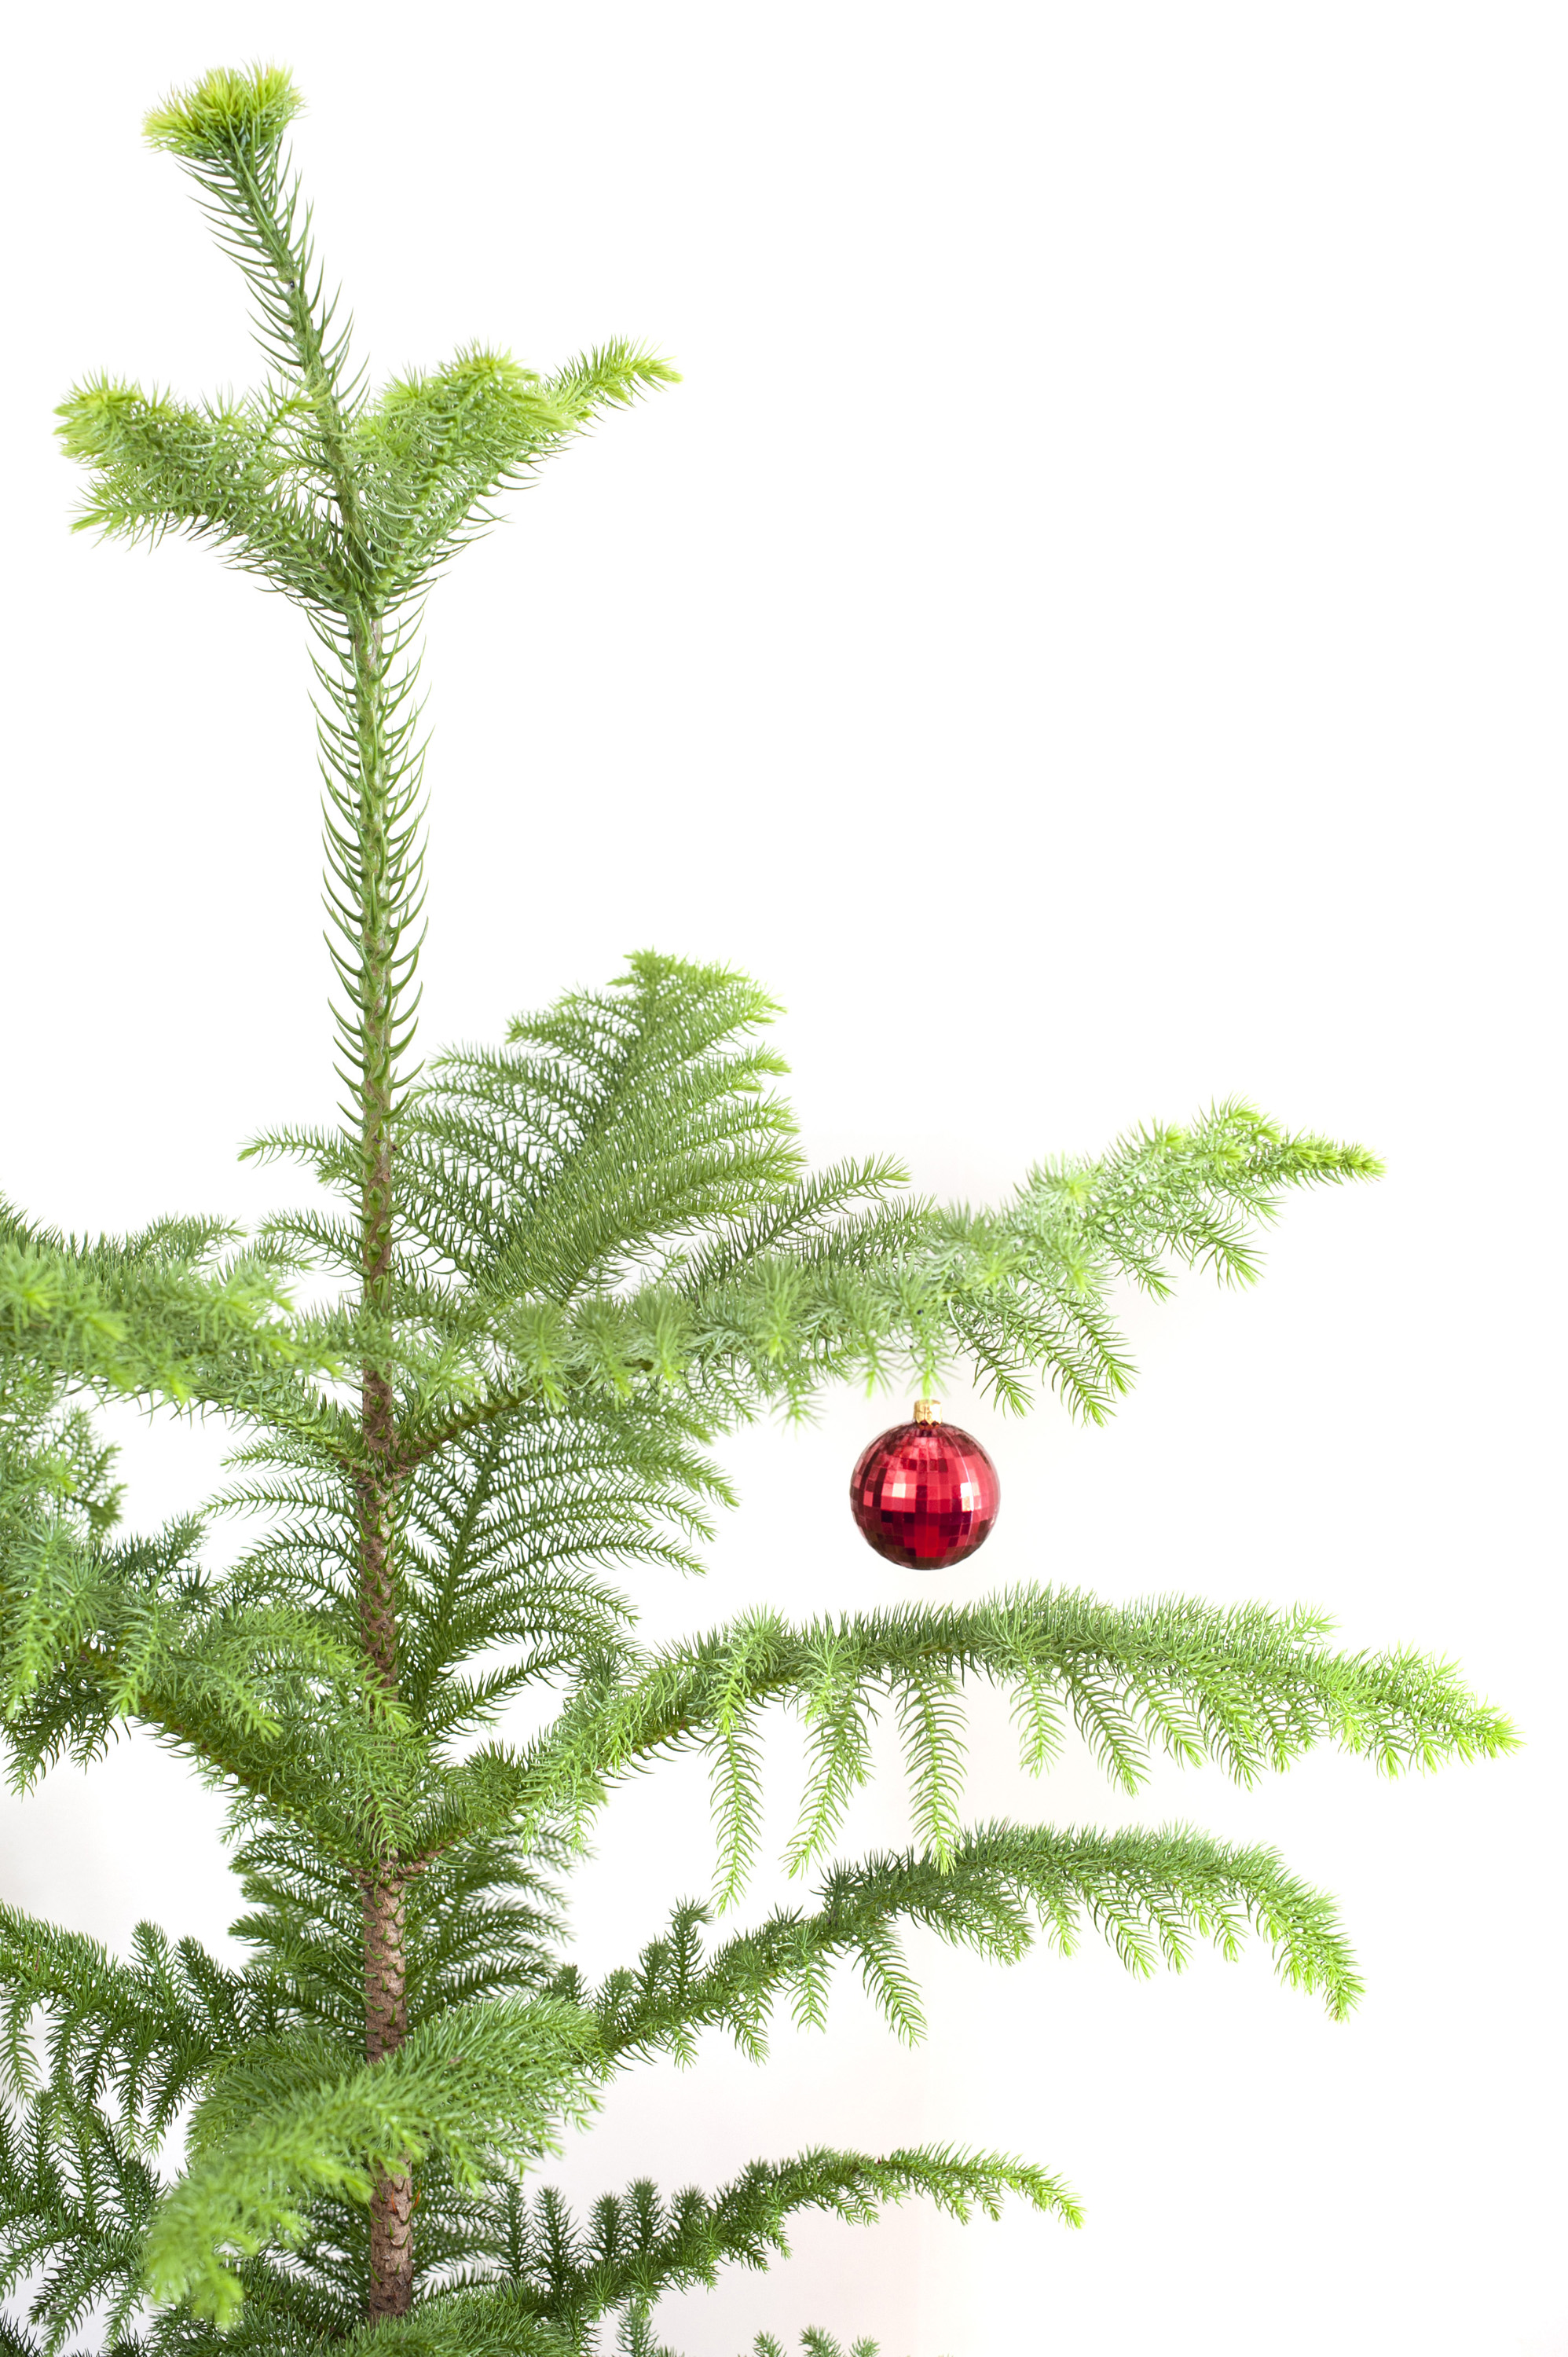 Photo of Evergreen pine Christmas tree with a red bauble | Free ...